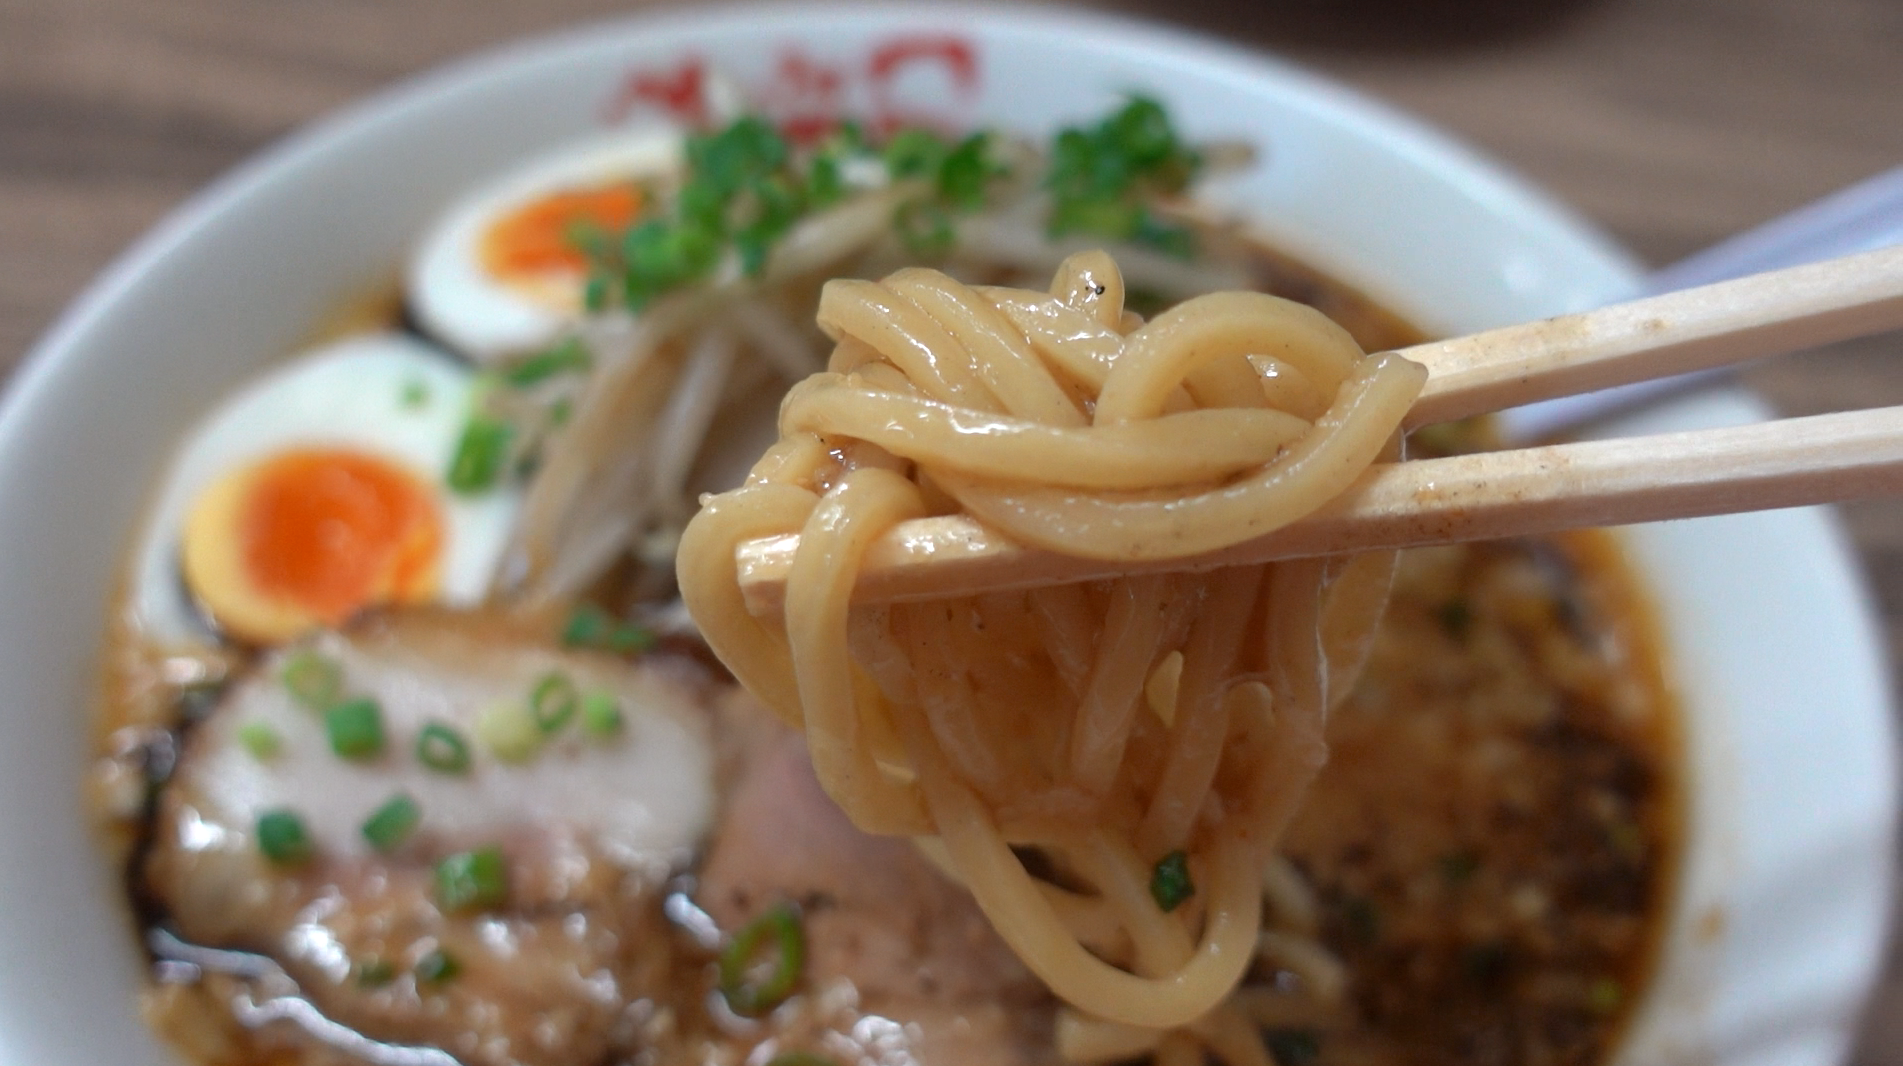 They use thick straight egg noodles